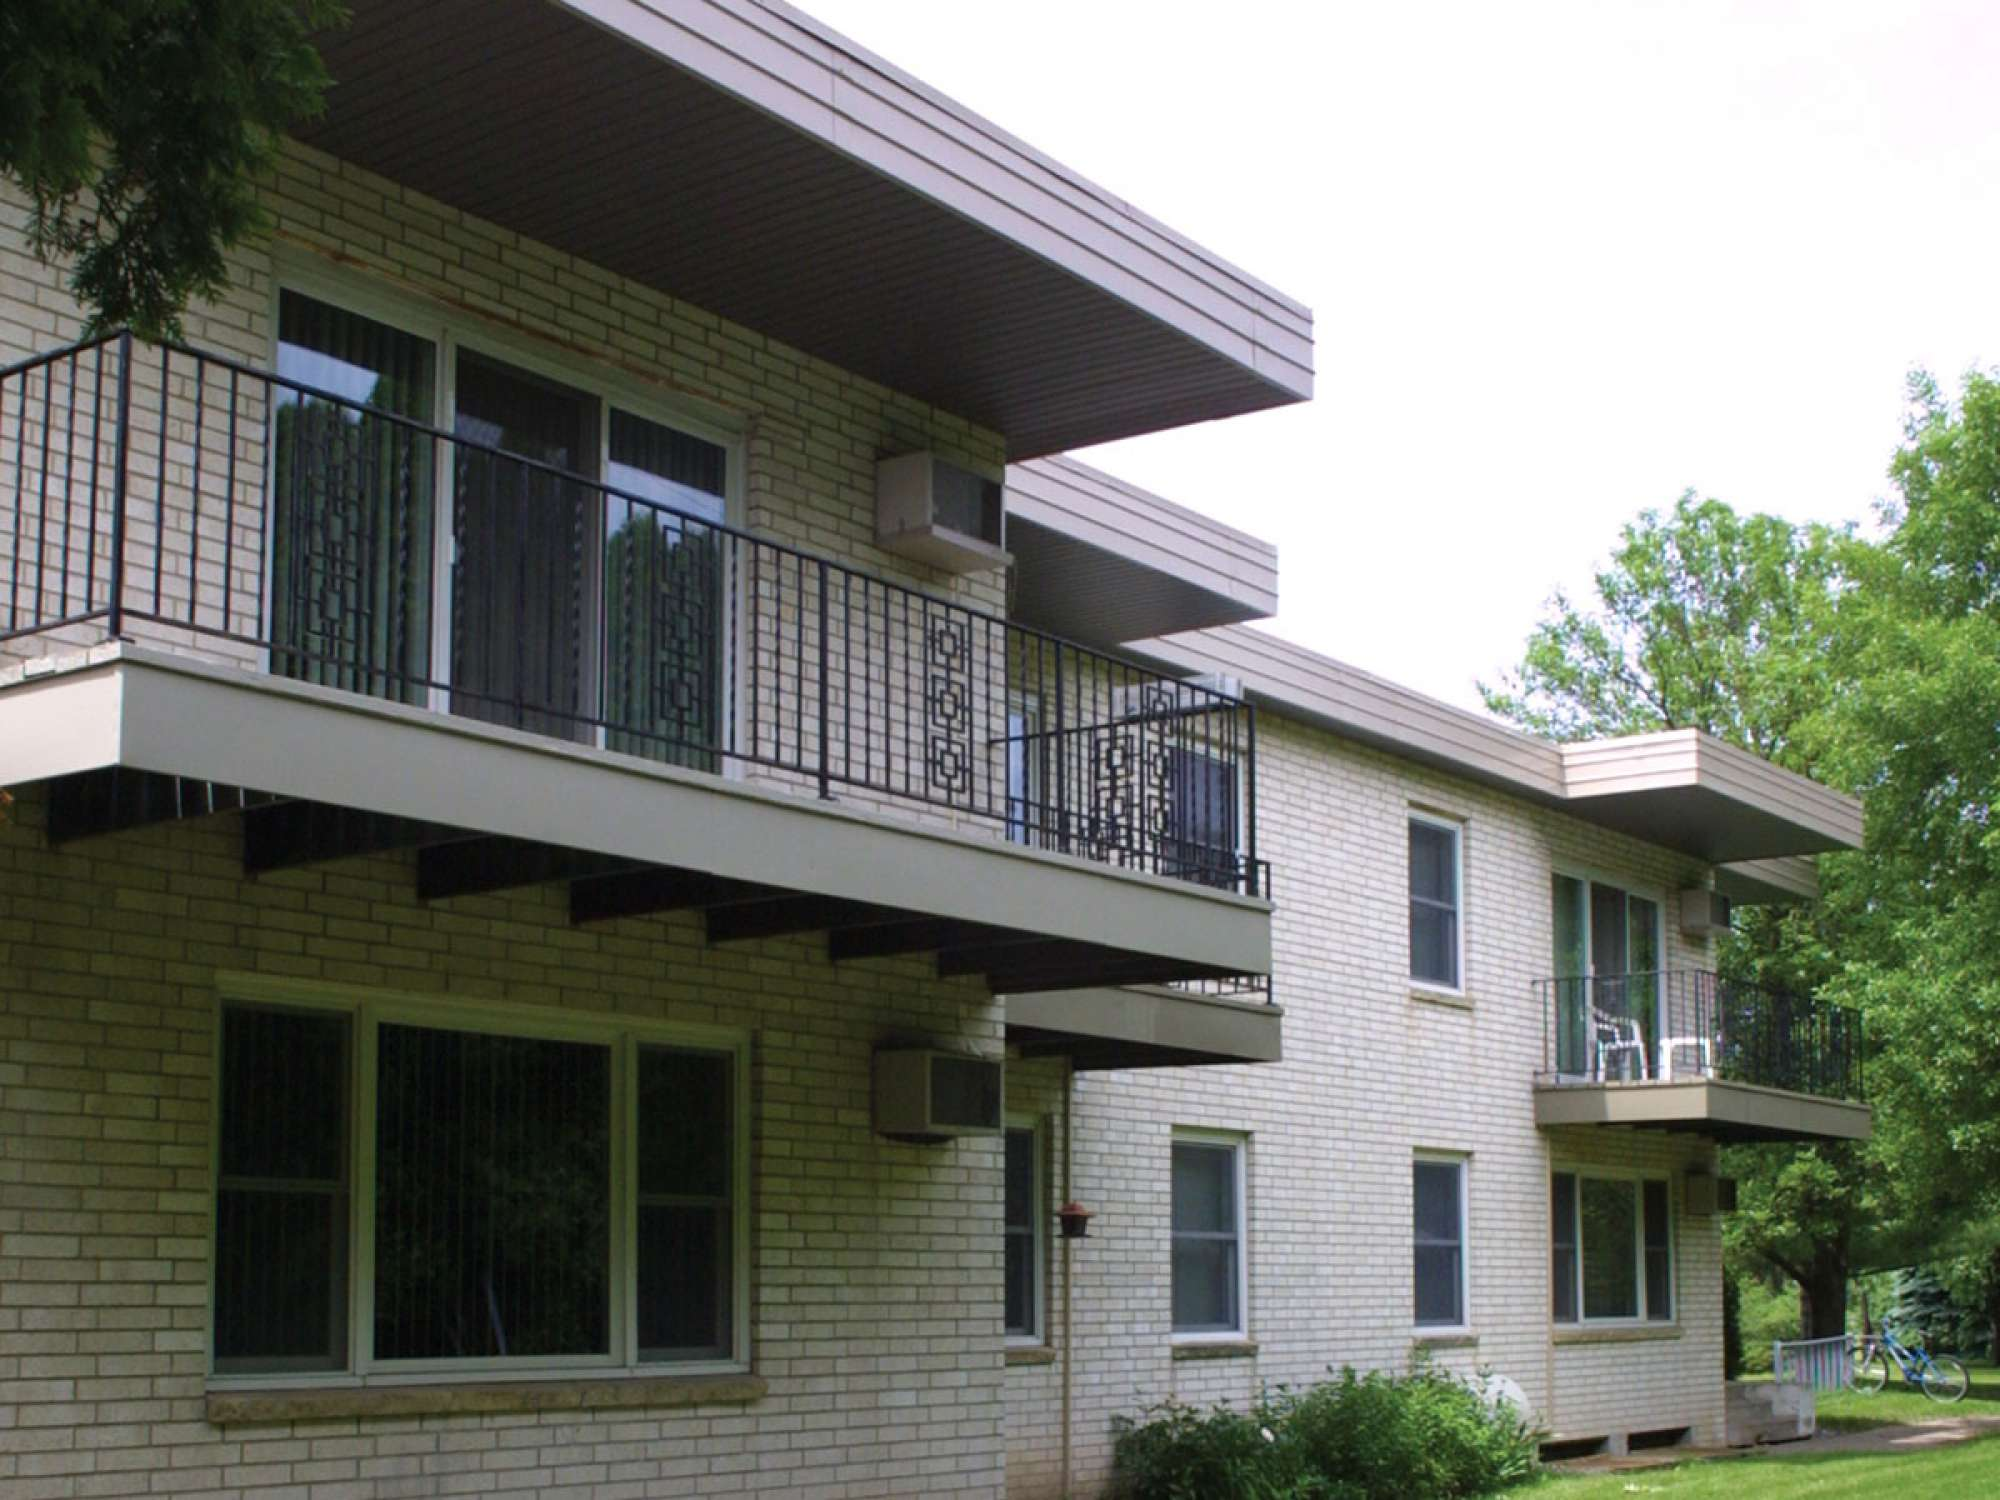 Balcony picture of the Southeast Residence Halls